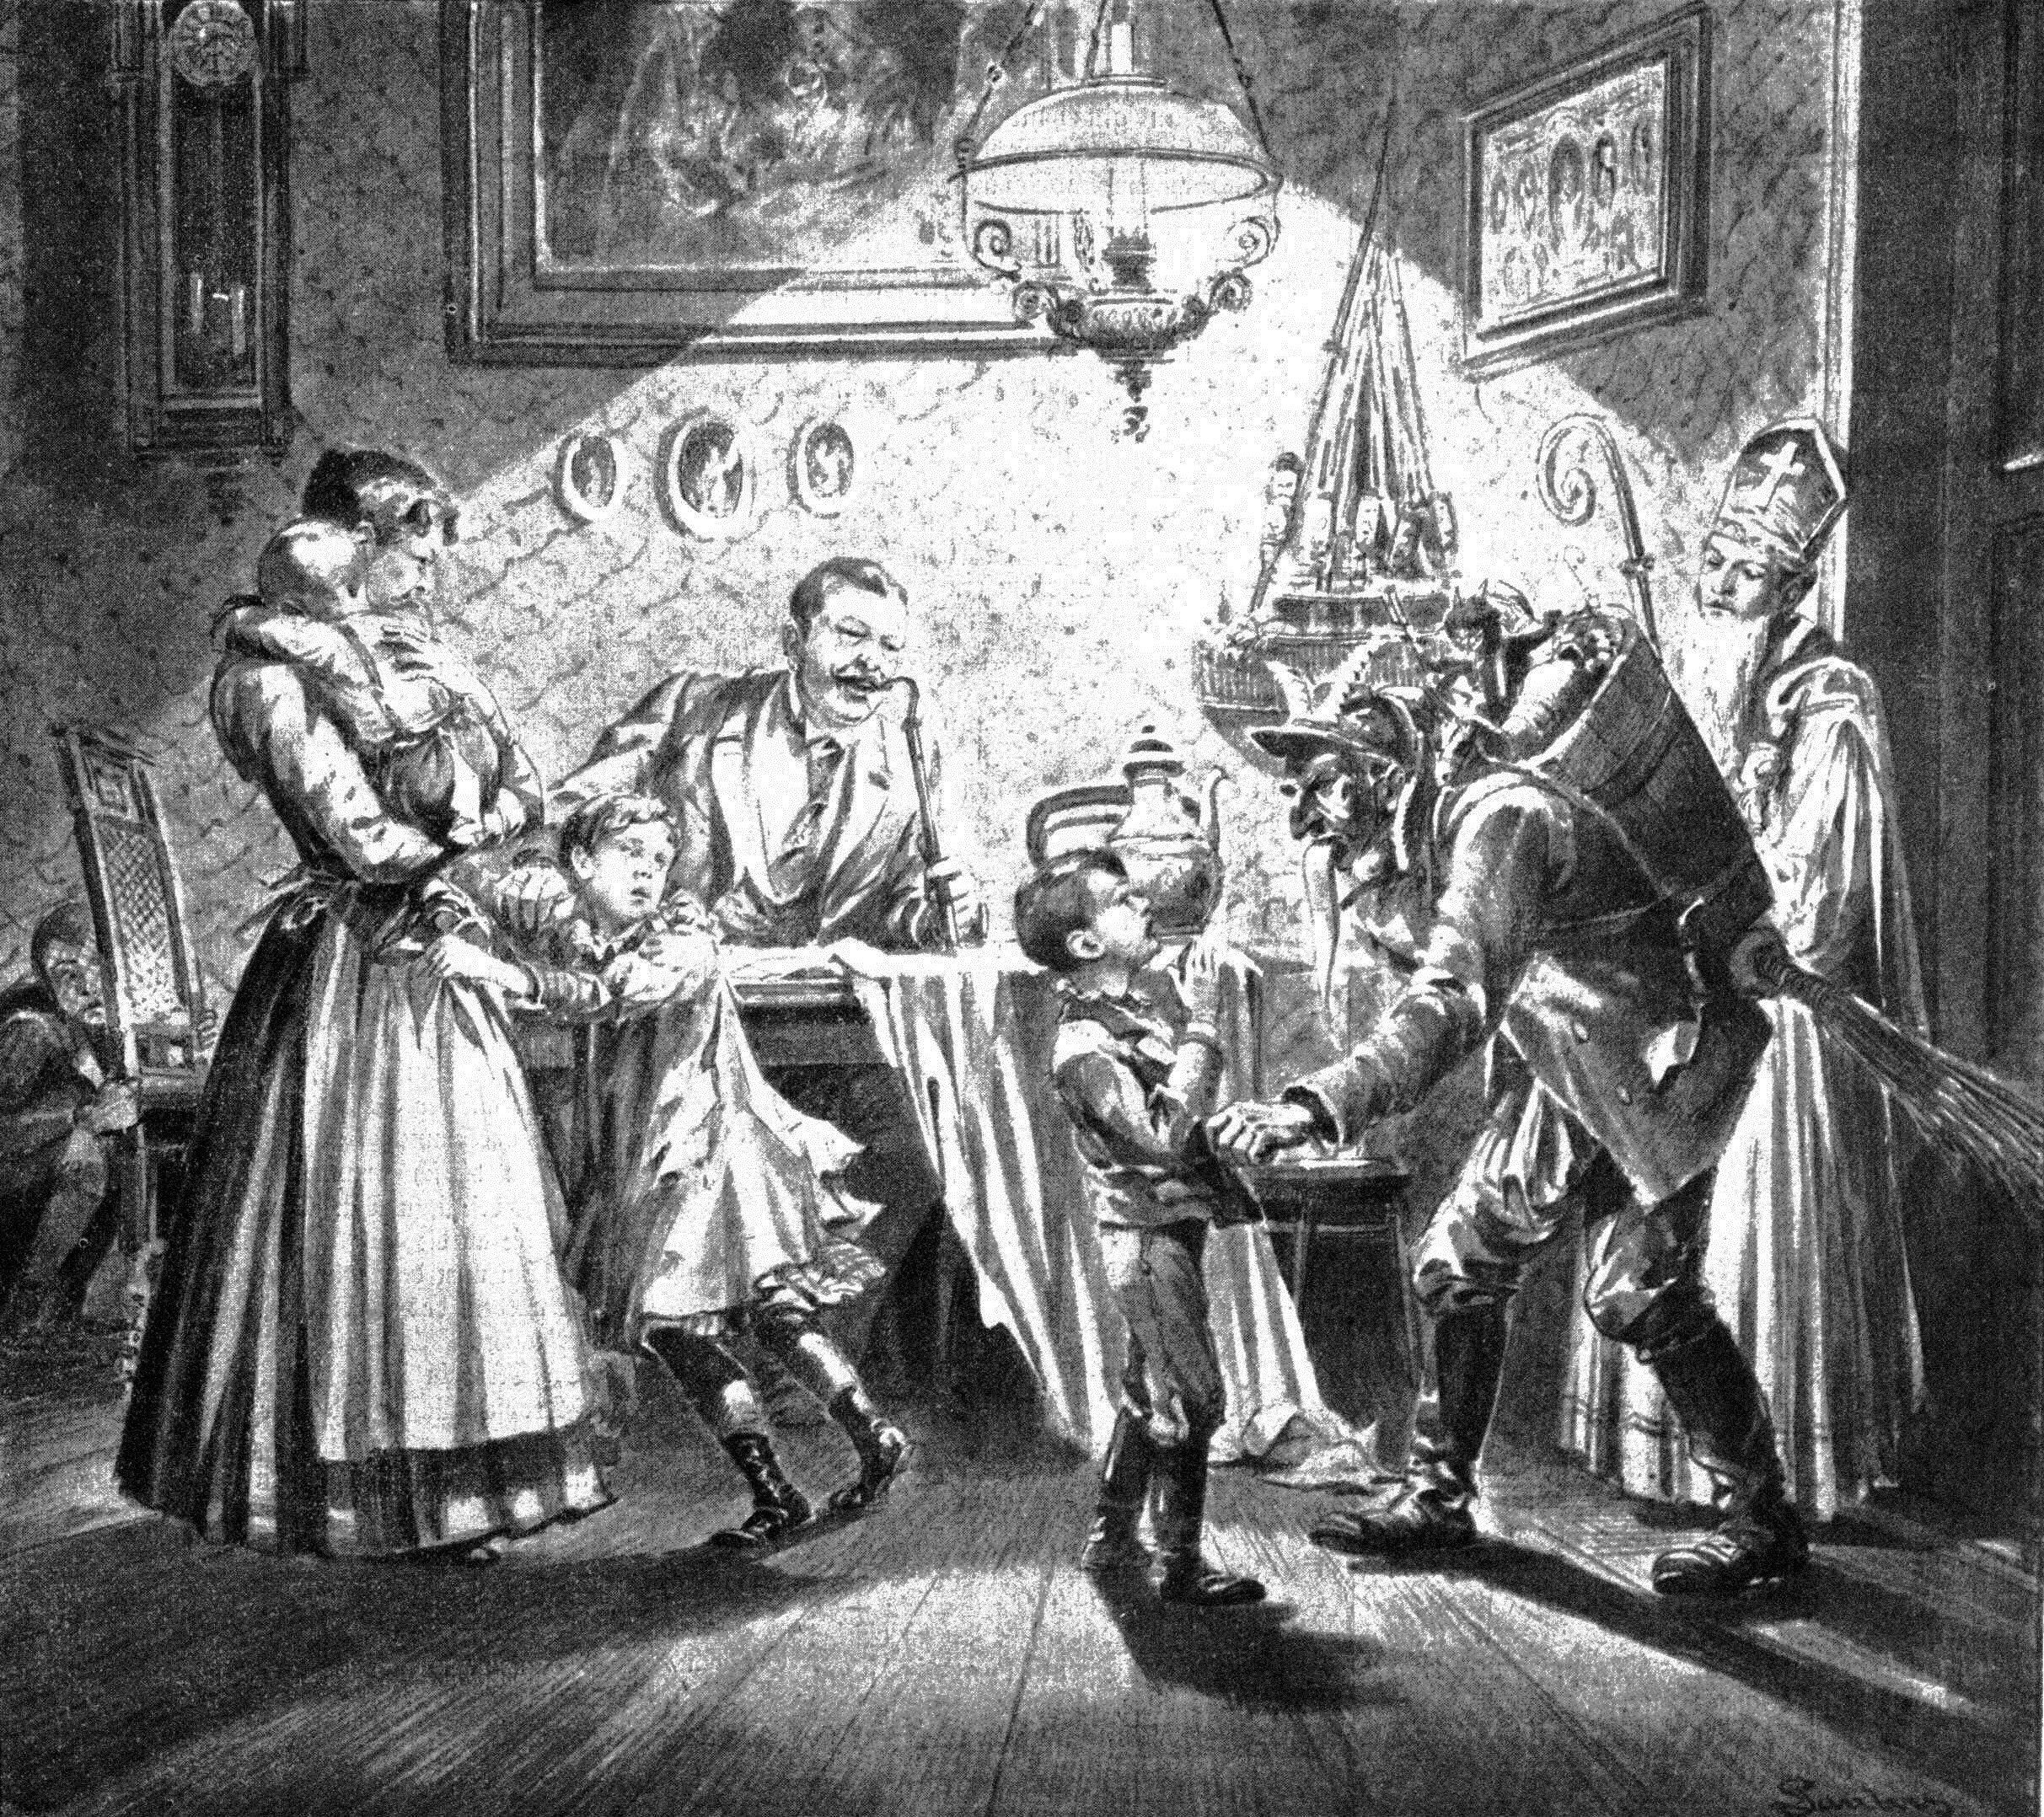 A newspaper illustration of Nikolaus and Krampus from 1896